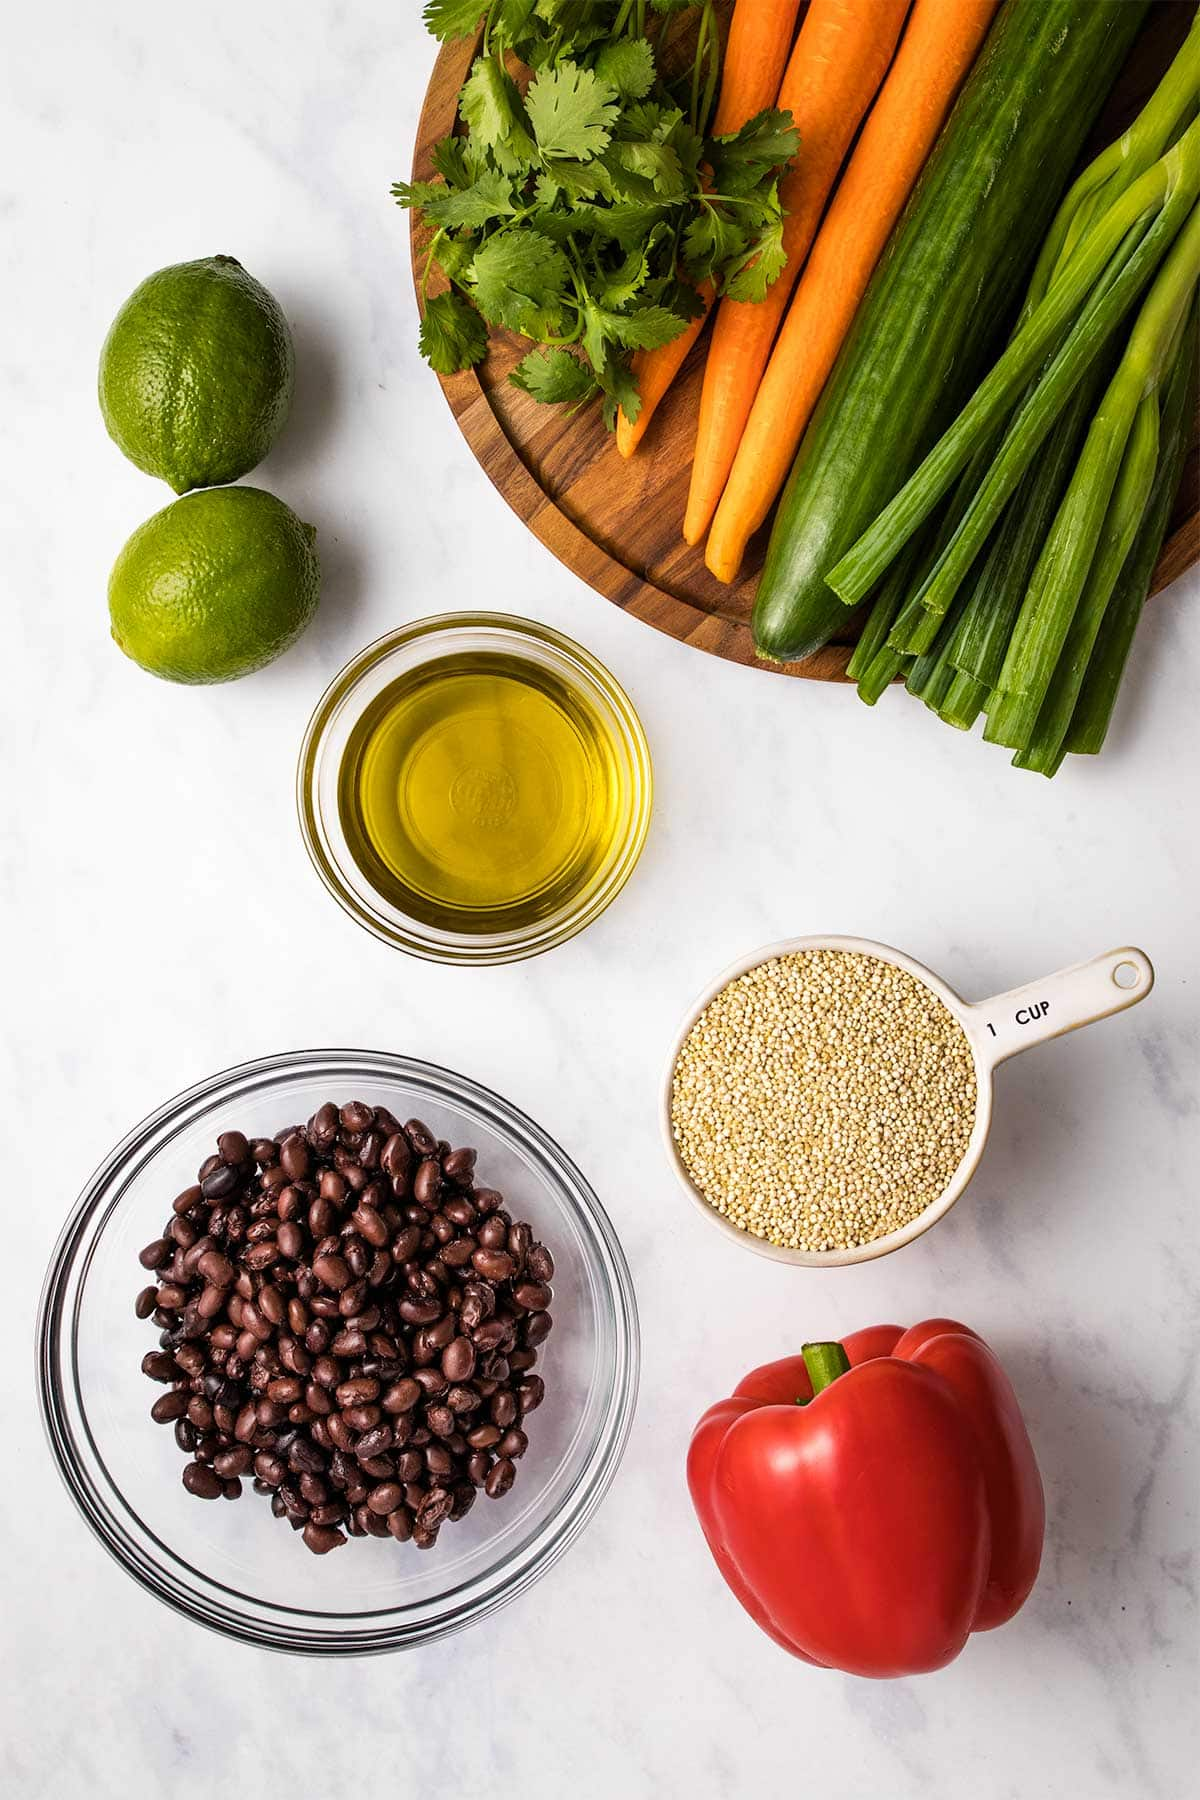 Ingredients for quinoa black bean salad in glass bowls